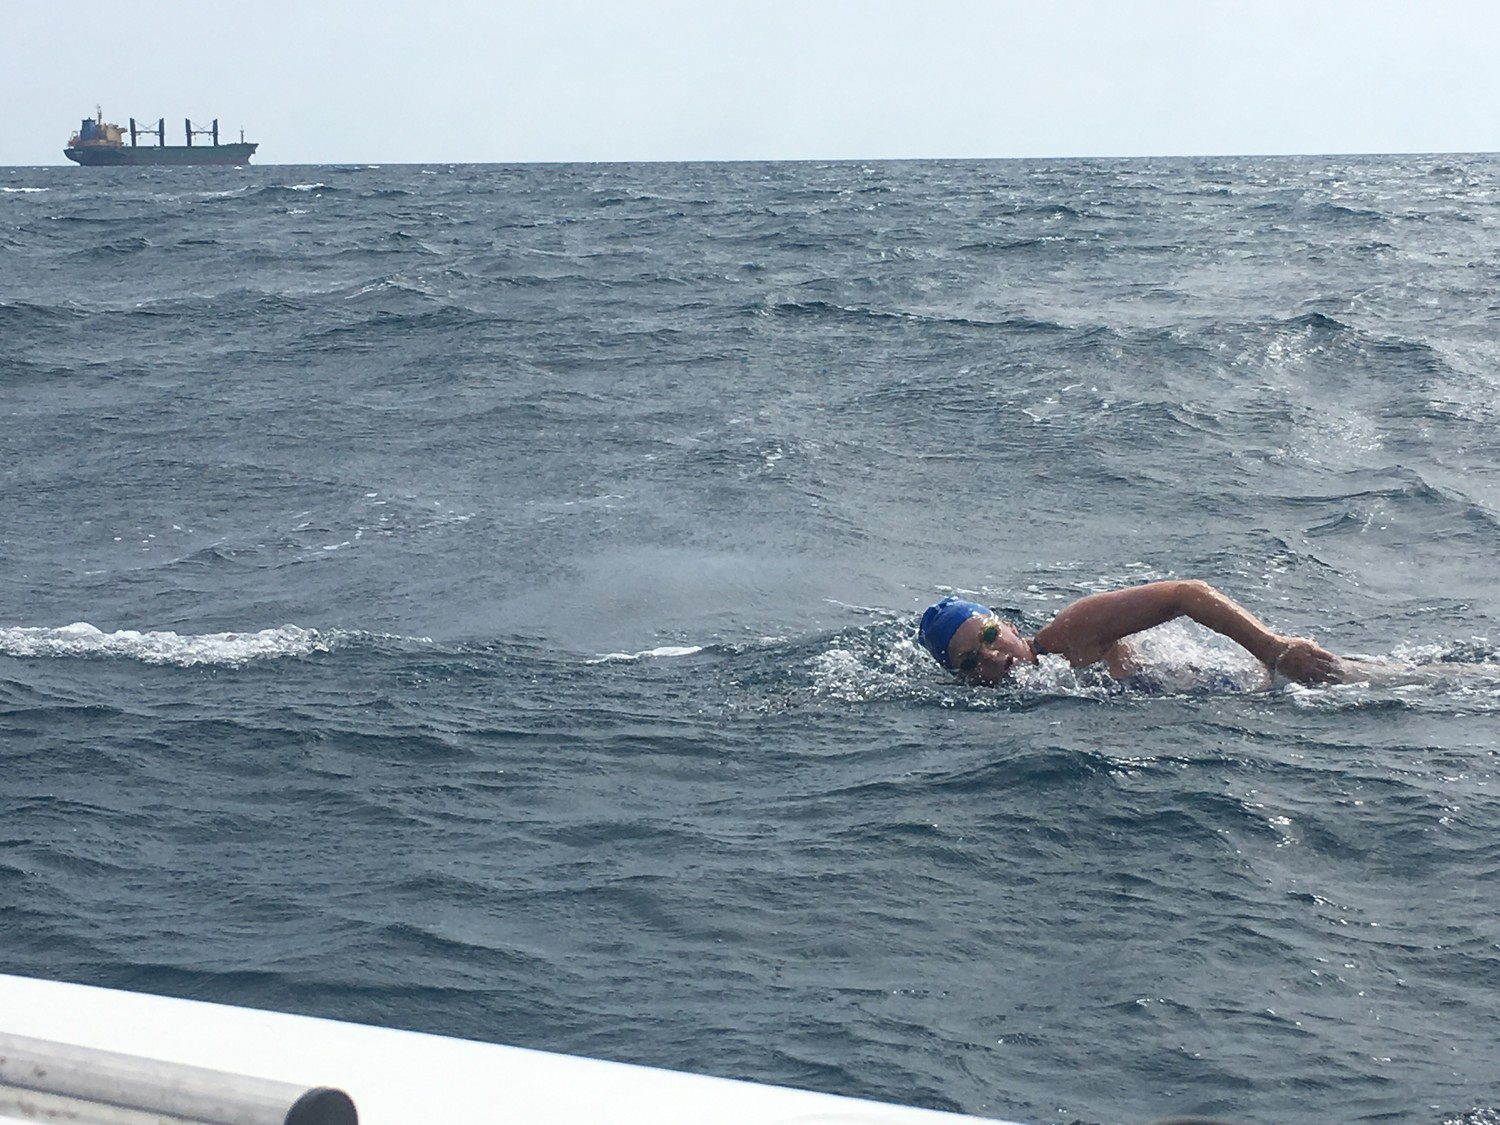 Open-water swimmer Lori King, of Rockville Centre, finished third in the 29th Swimming Marathon of Messinian Gulf in northern Greece earlier this month, completing the 30-kilometer race in 8 hours, 56 minutes.